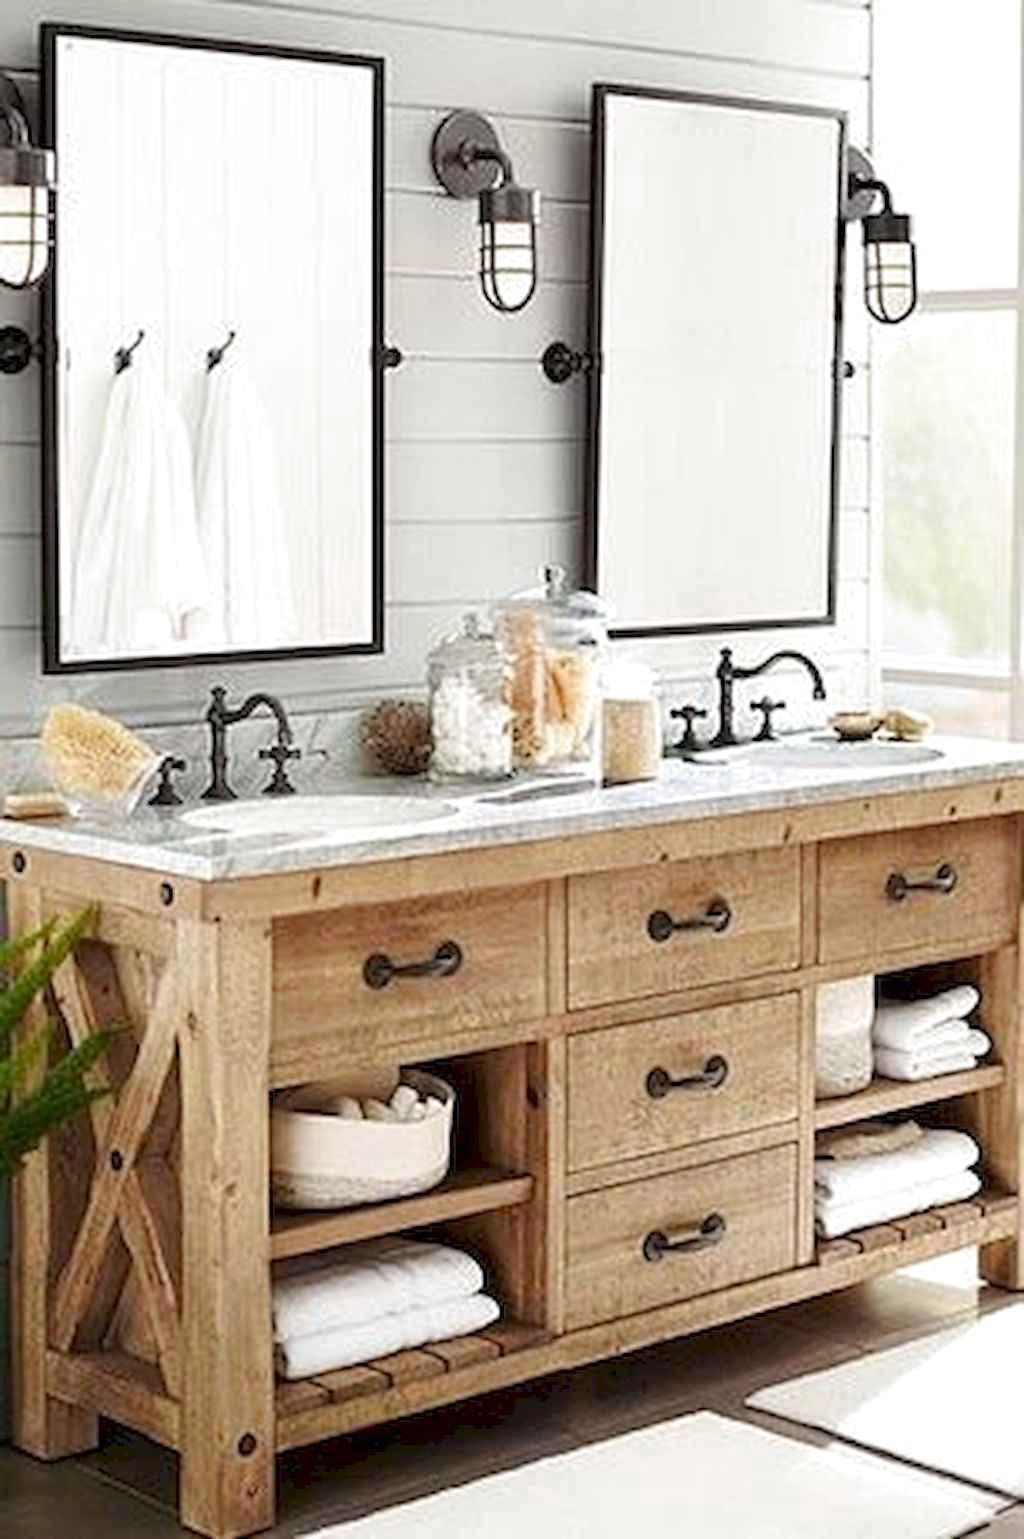 68 Favourite Farmhouse Bathroom Decor Ideas Farmhousebathroom Bathroomideas Bathroo In 2020 Rustic Bathroom Vanities Double Vanity Bathroom Rustic Master Bathroom